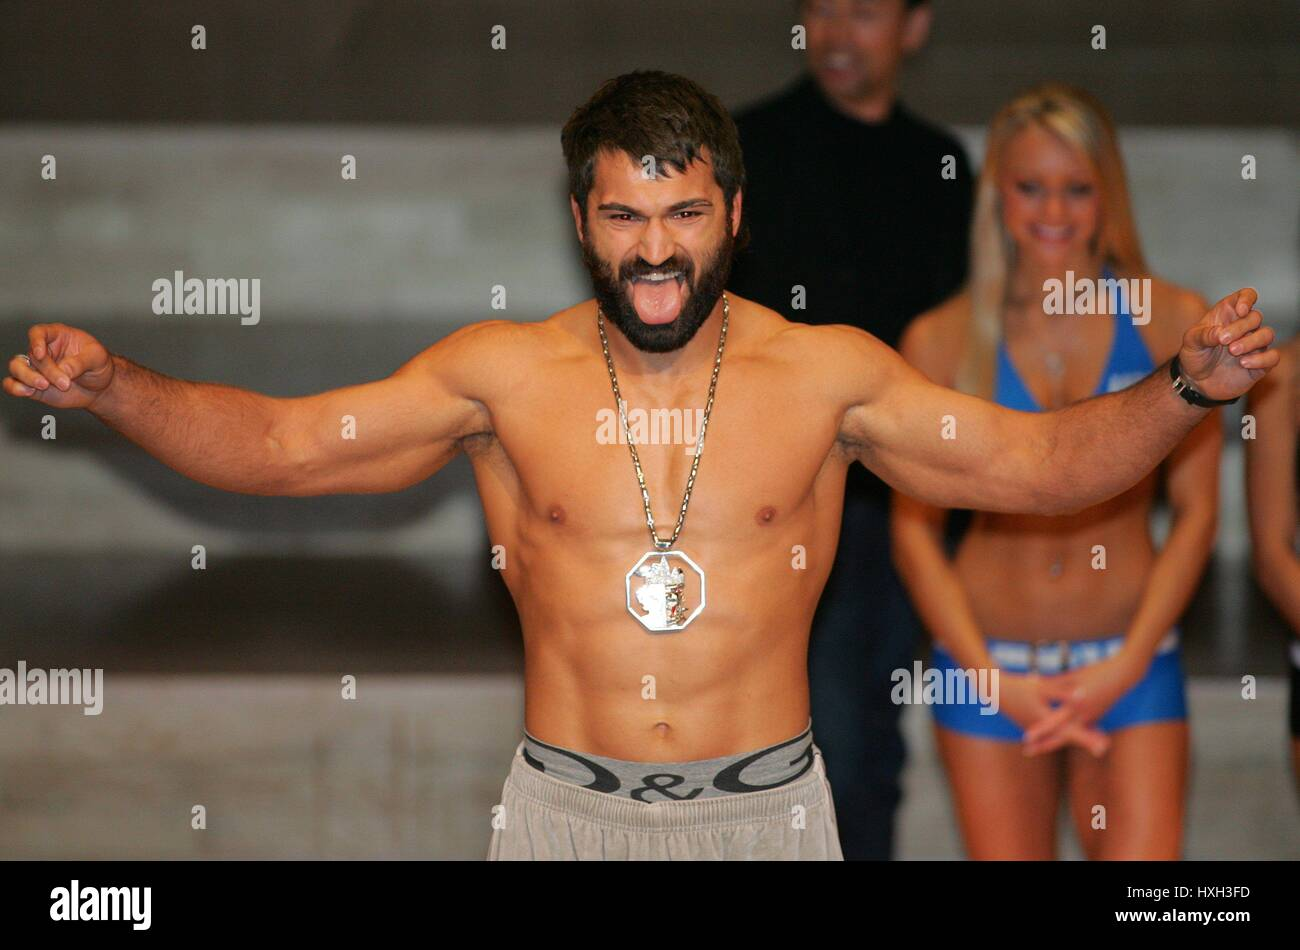 ARDRIE ARLOVSKI UFC HEAVY WEIGHT FIGHTER MANCHESTER  ENGLAND 20 April 2007 - Stock Image